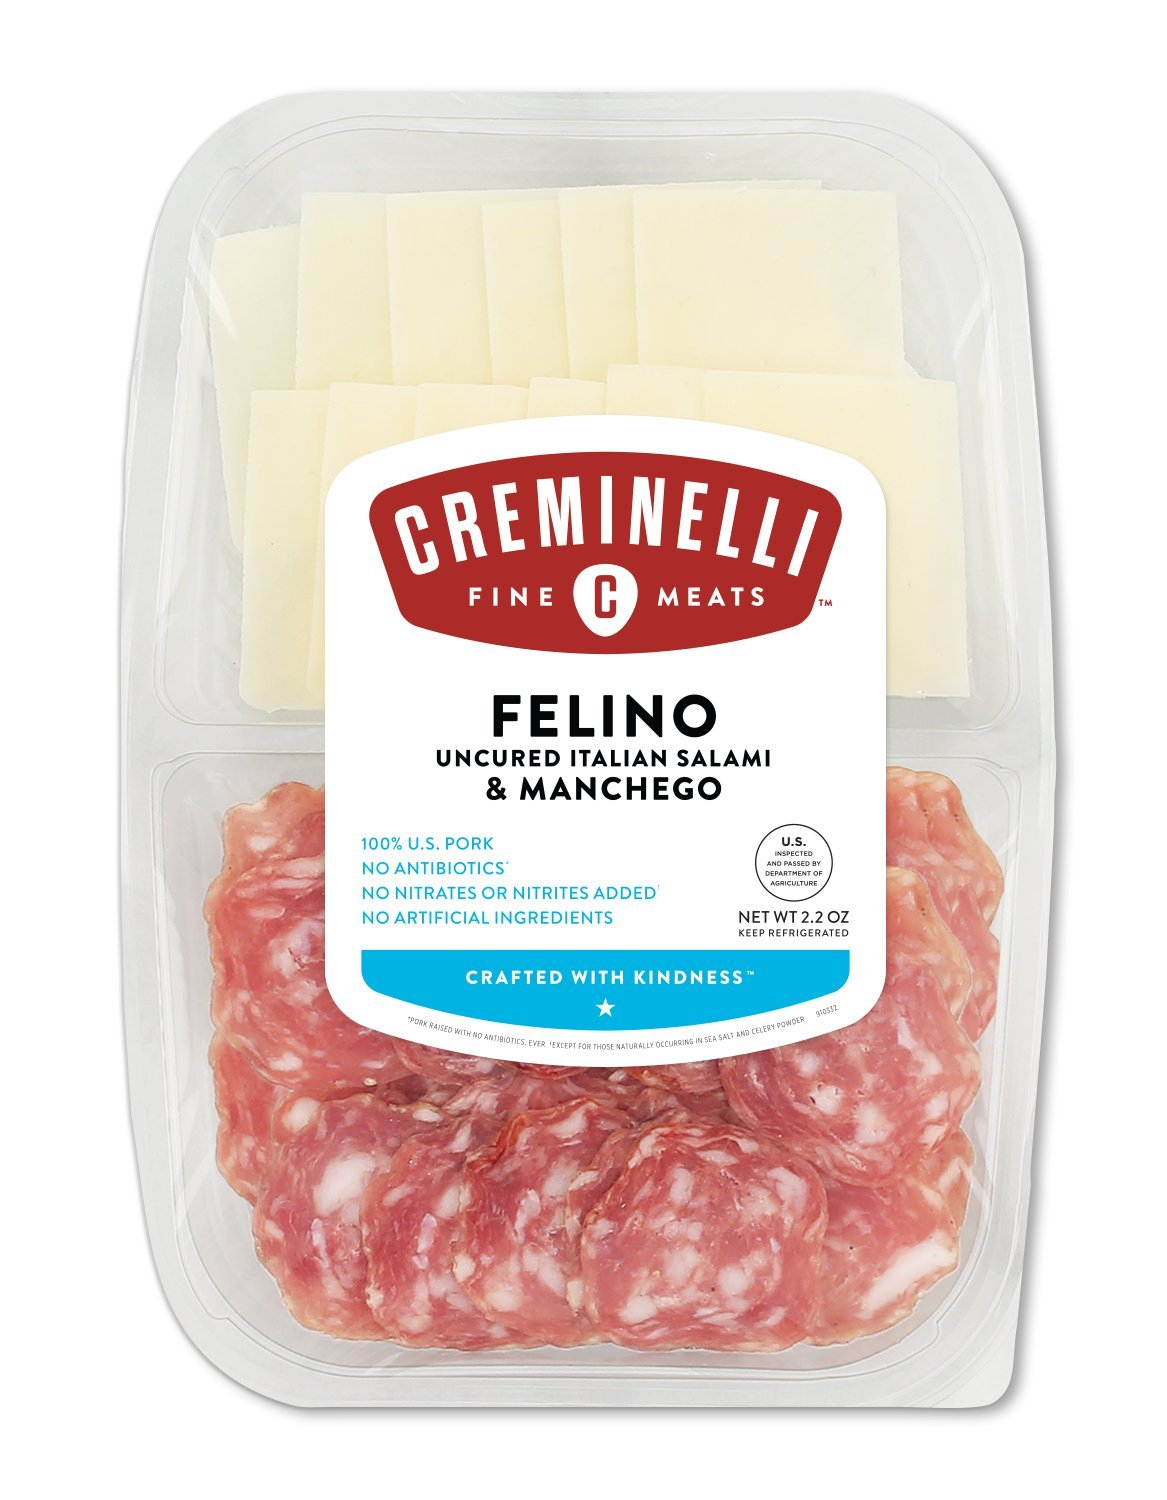 Creminelli Sliced Itallian Felino Salami with Manchego Cheese, Nutmeg and Pepper Flavored, Sandwich Meat, Deli Meat, Fermented & Aged Salami and Machego Cheese From Spain, 2.2 oz